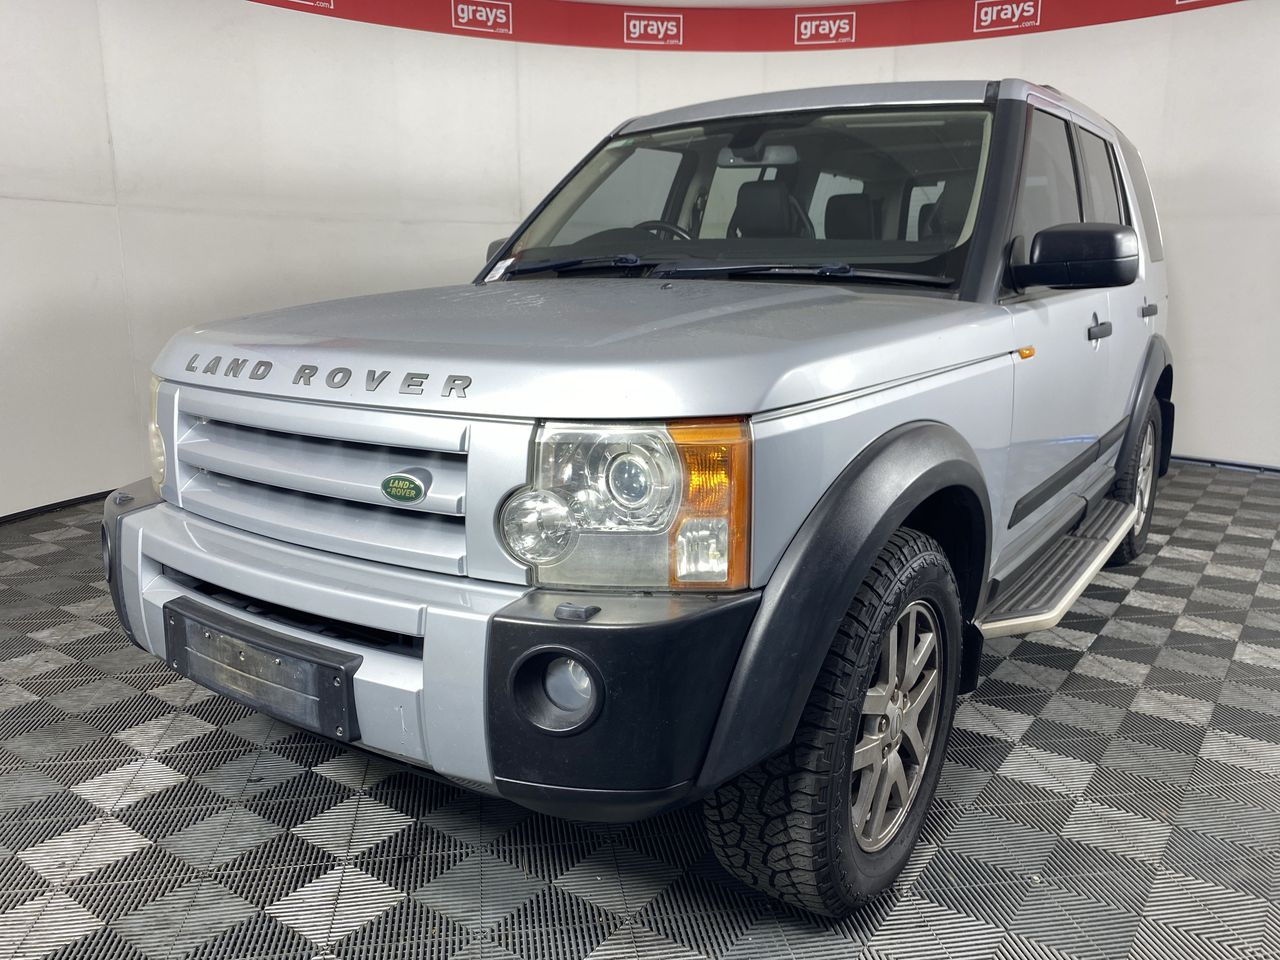 2007 Land Rover Discovery 3 SE Series III Turbo Diesel Auto 7 Seats Wagon